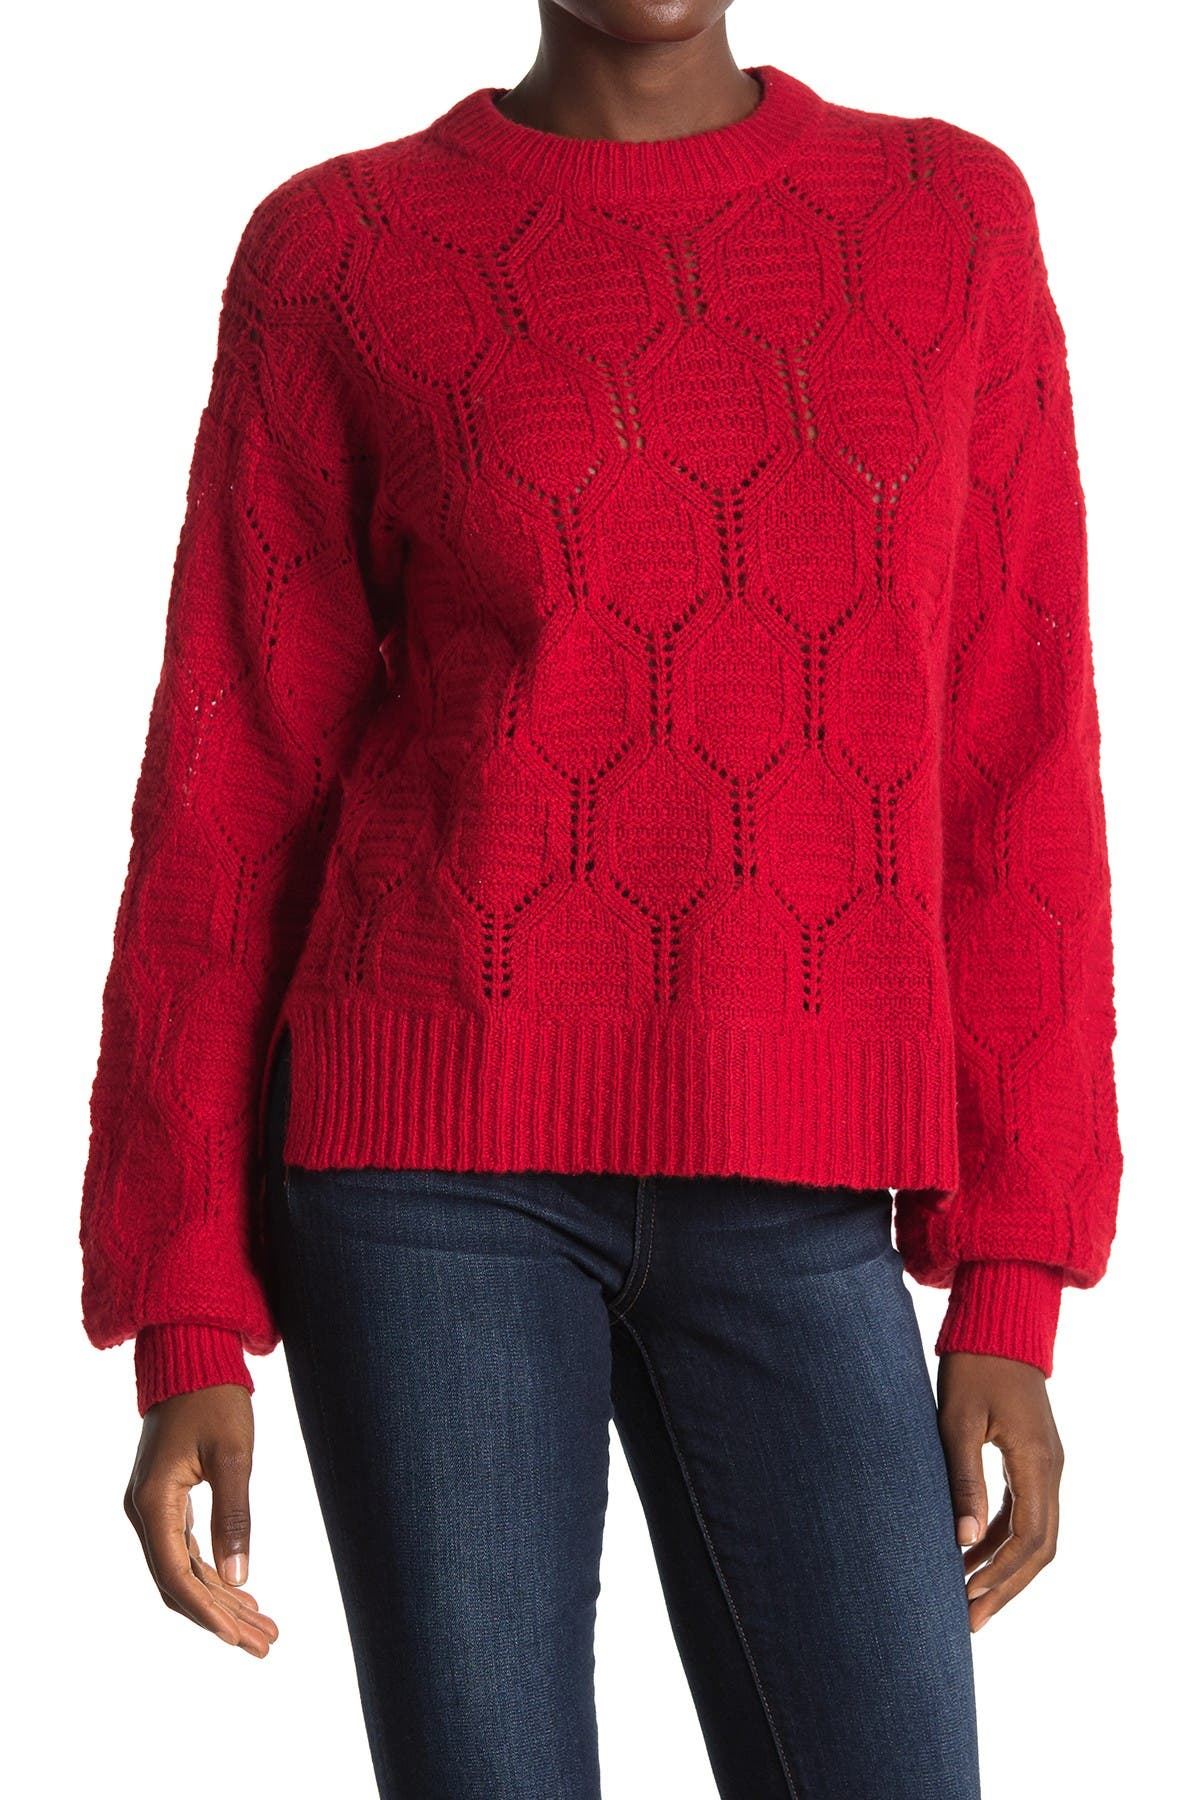 Image of Autumn Cashmere Cropped Cashmere Cardigan